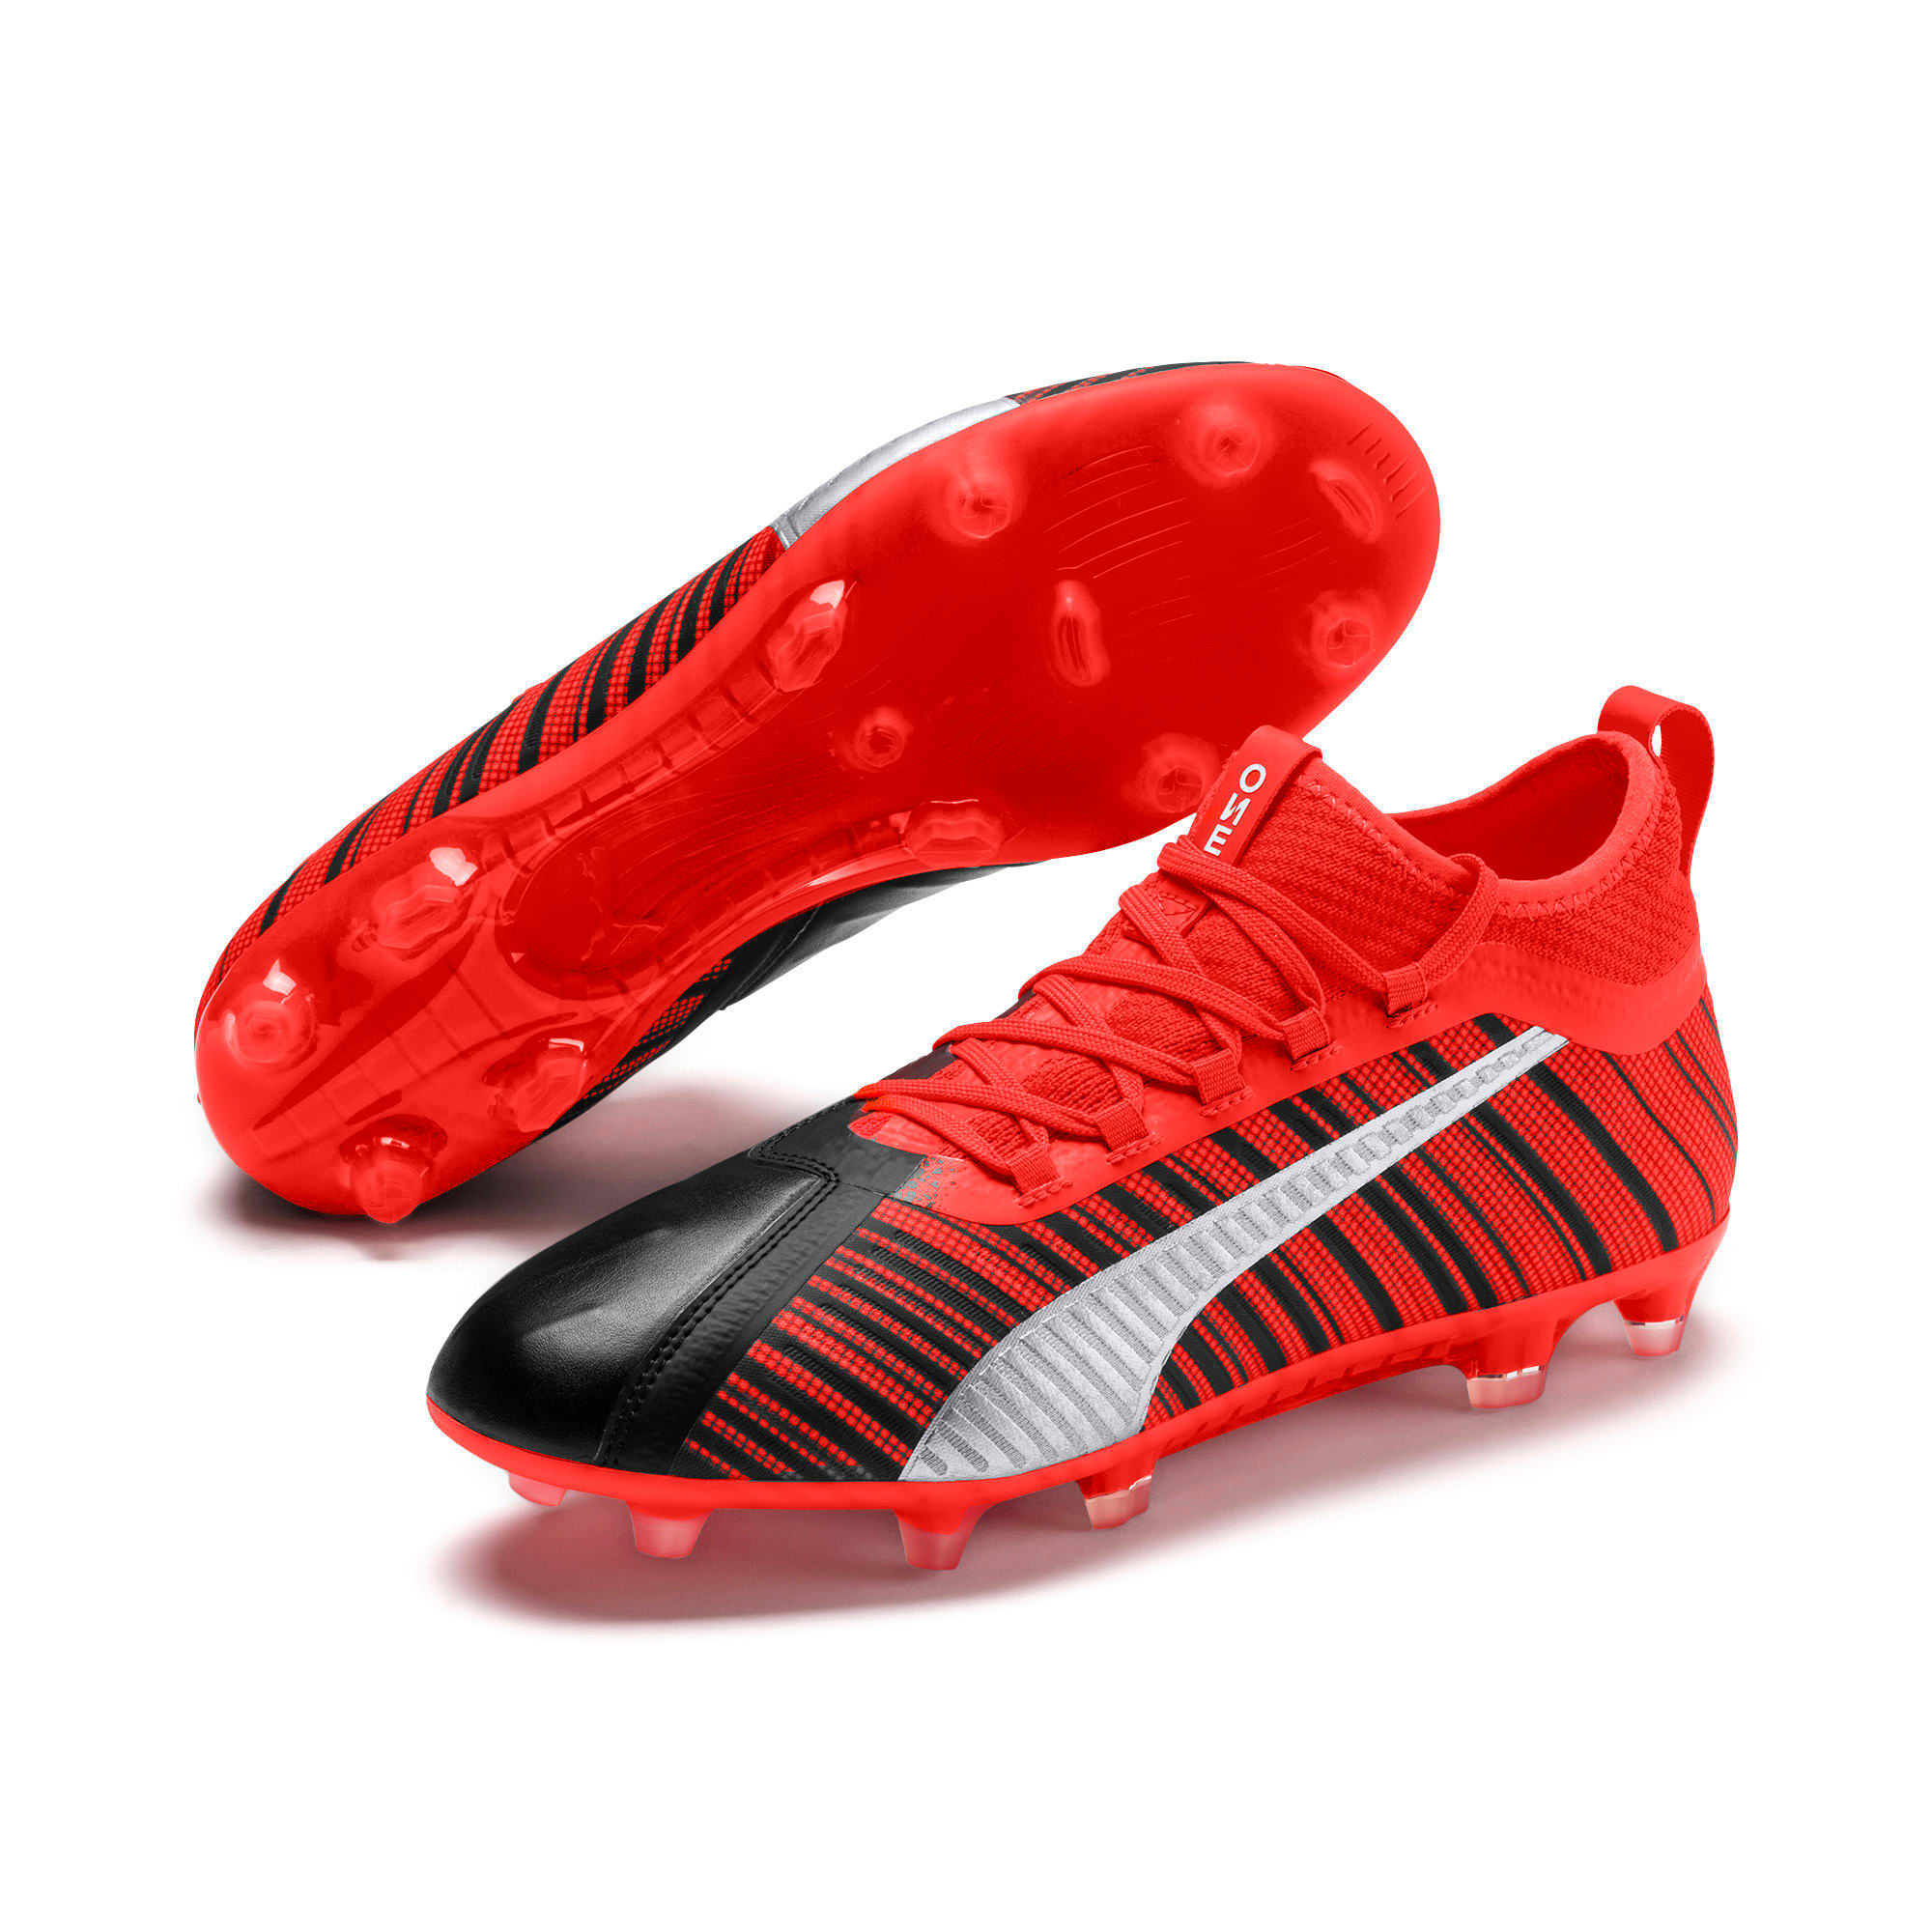 Thumbnail 3 of PUMA ONE 5.2 FG/AG Herren Fußballschuhe, Black-Nrgy Red-Aged Silver, medium